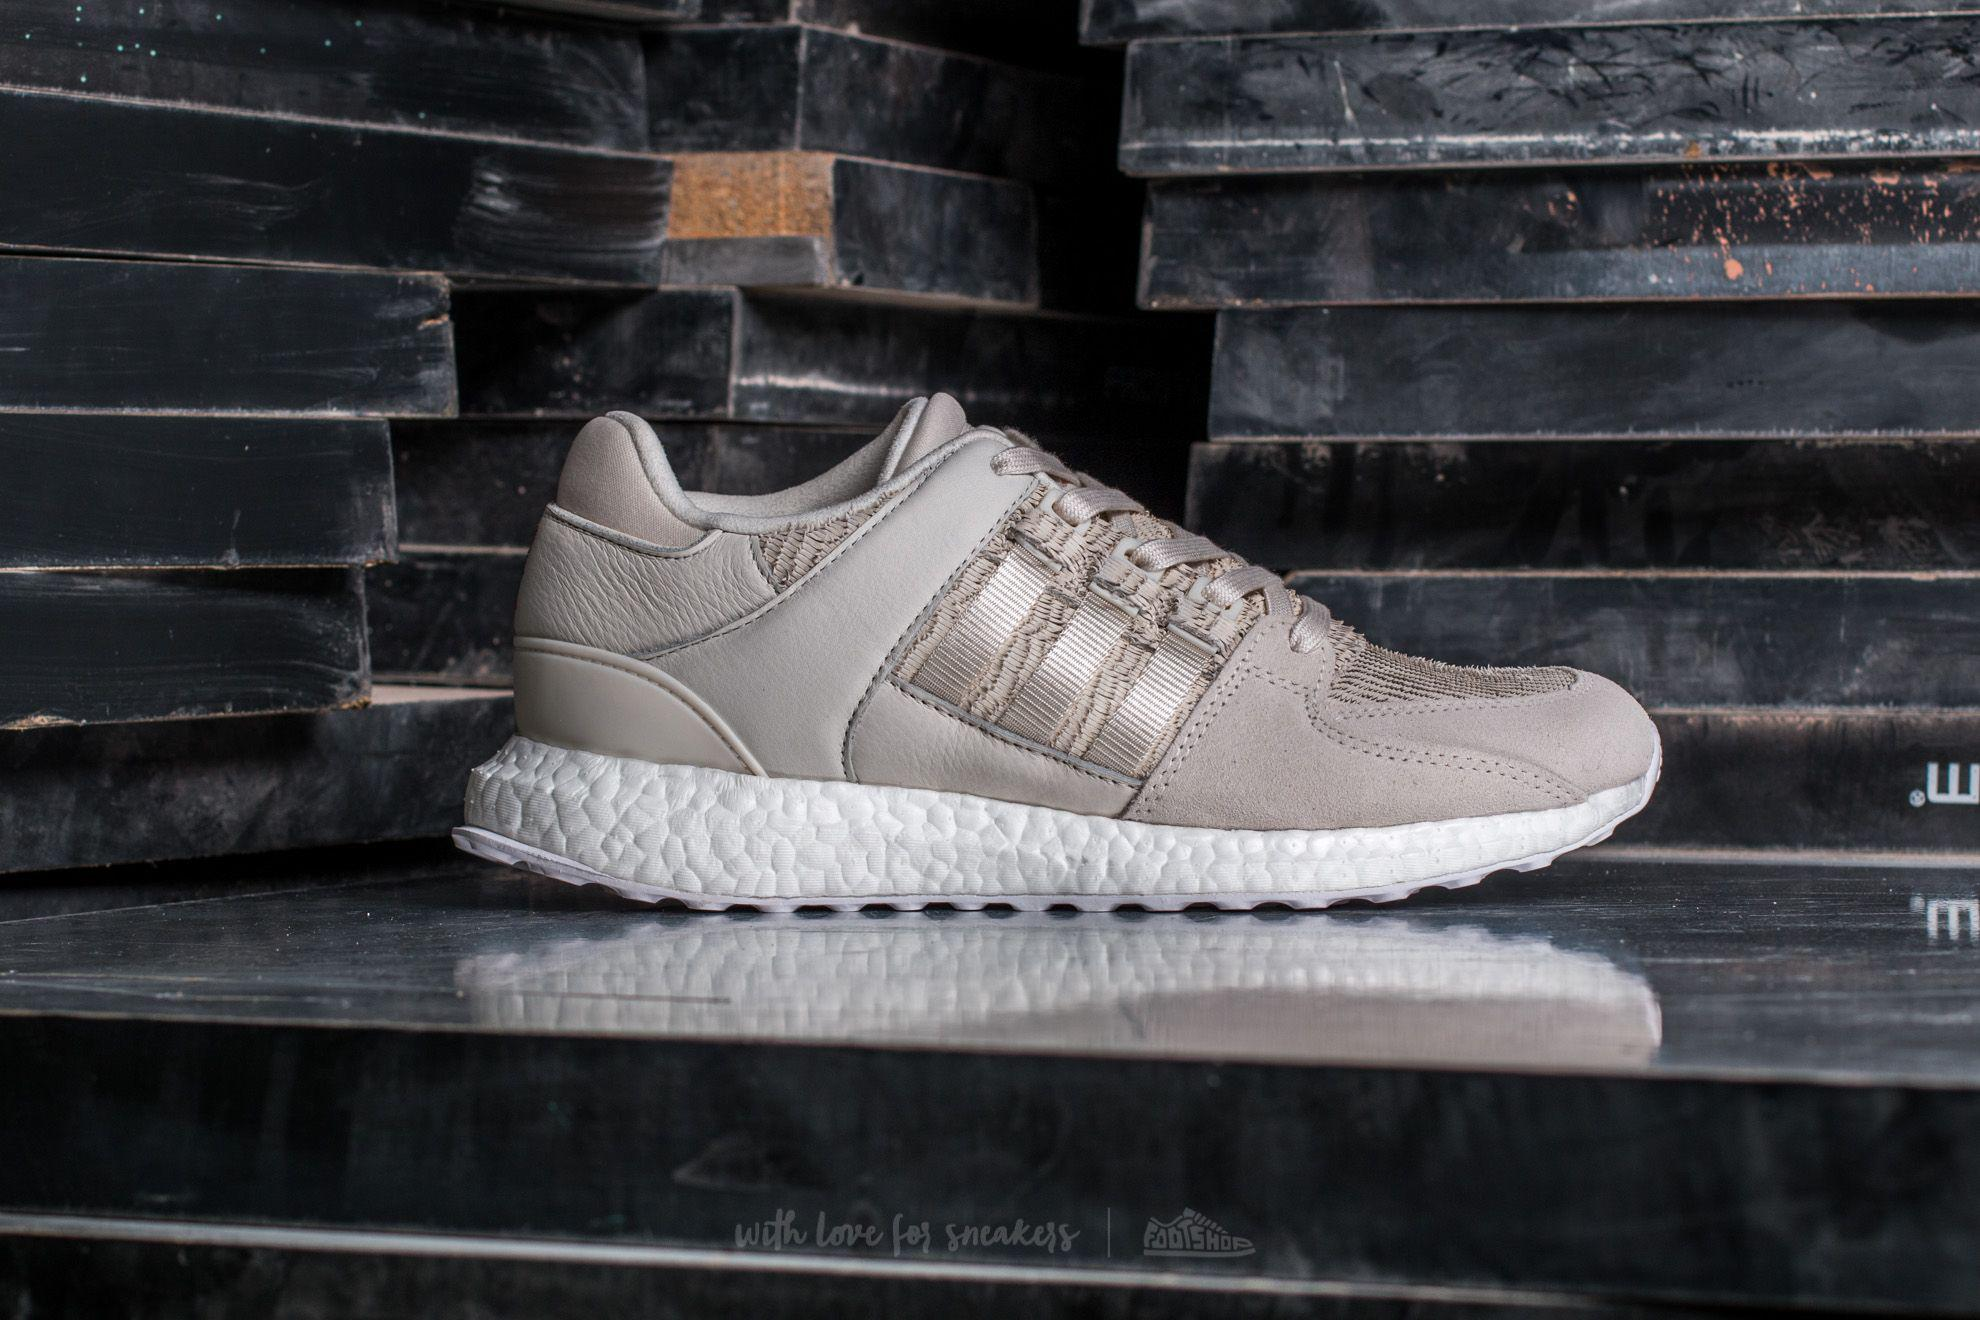 official photos 57670 a1671 Lyst - Adidas Originals Adidas Eqt Support Ultra Cny Chalk W